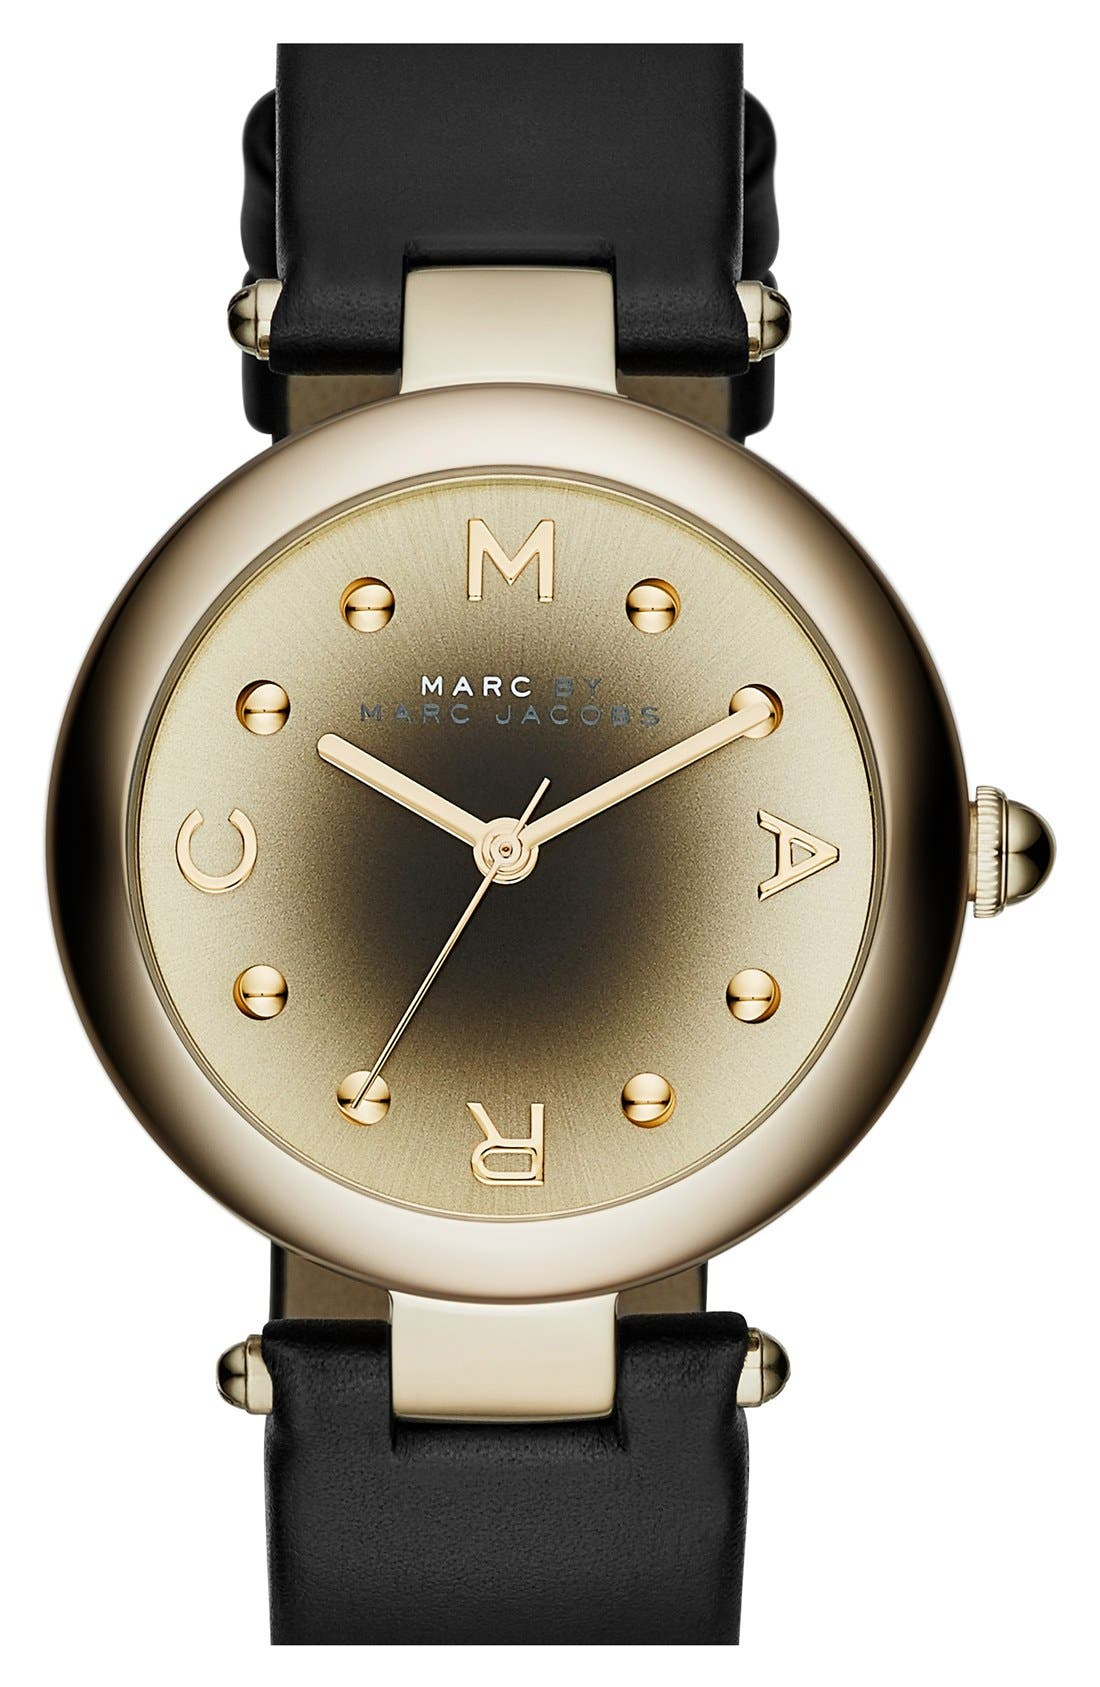 MARC JACOBS, 'Dotty' Leather Strap Watch,34mm, Main thumbnail 1, color, 001